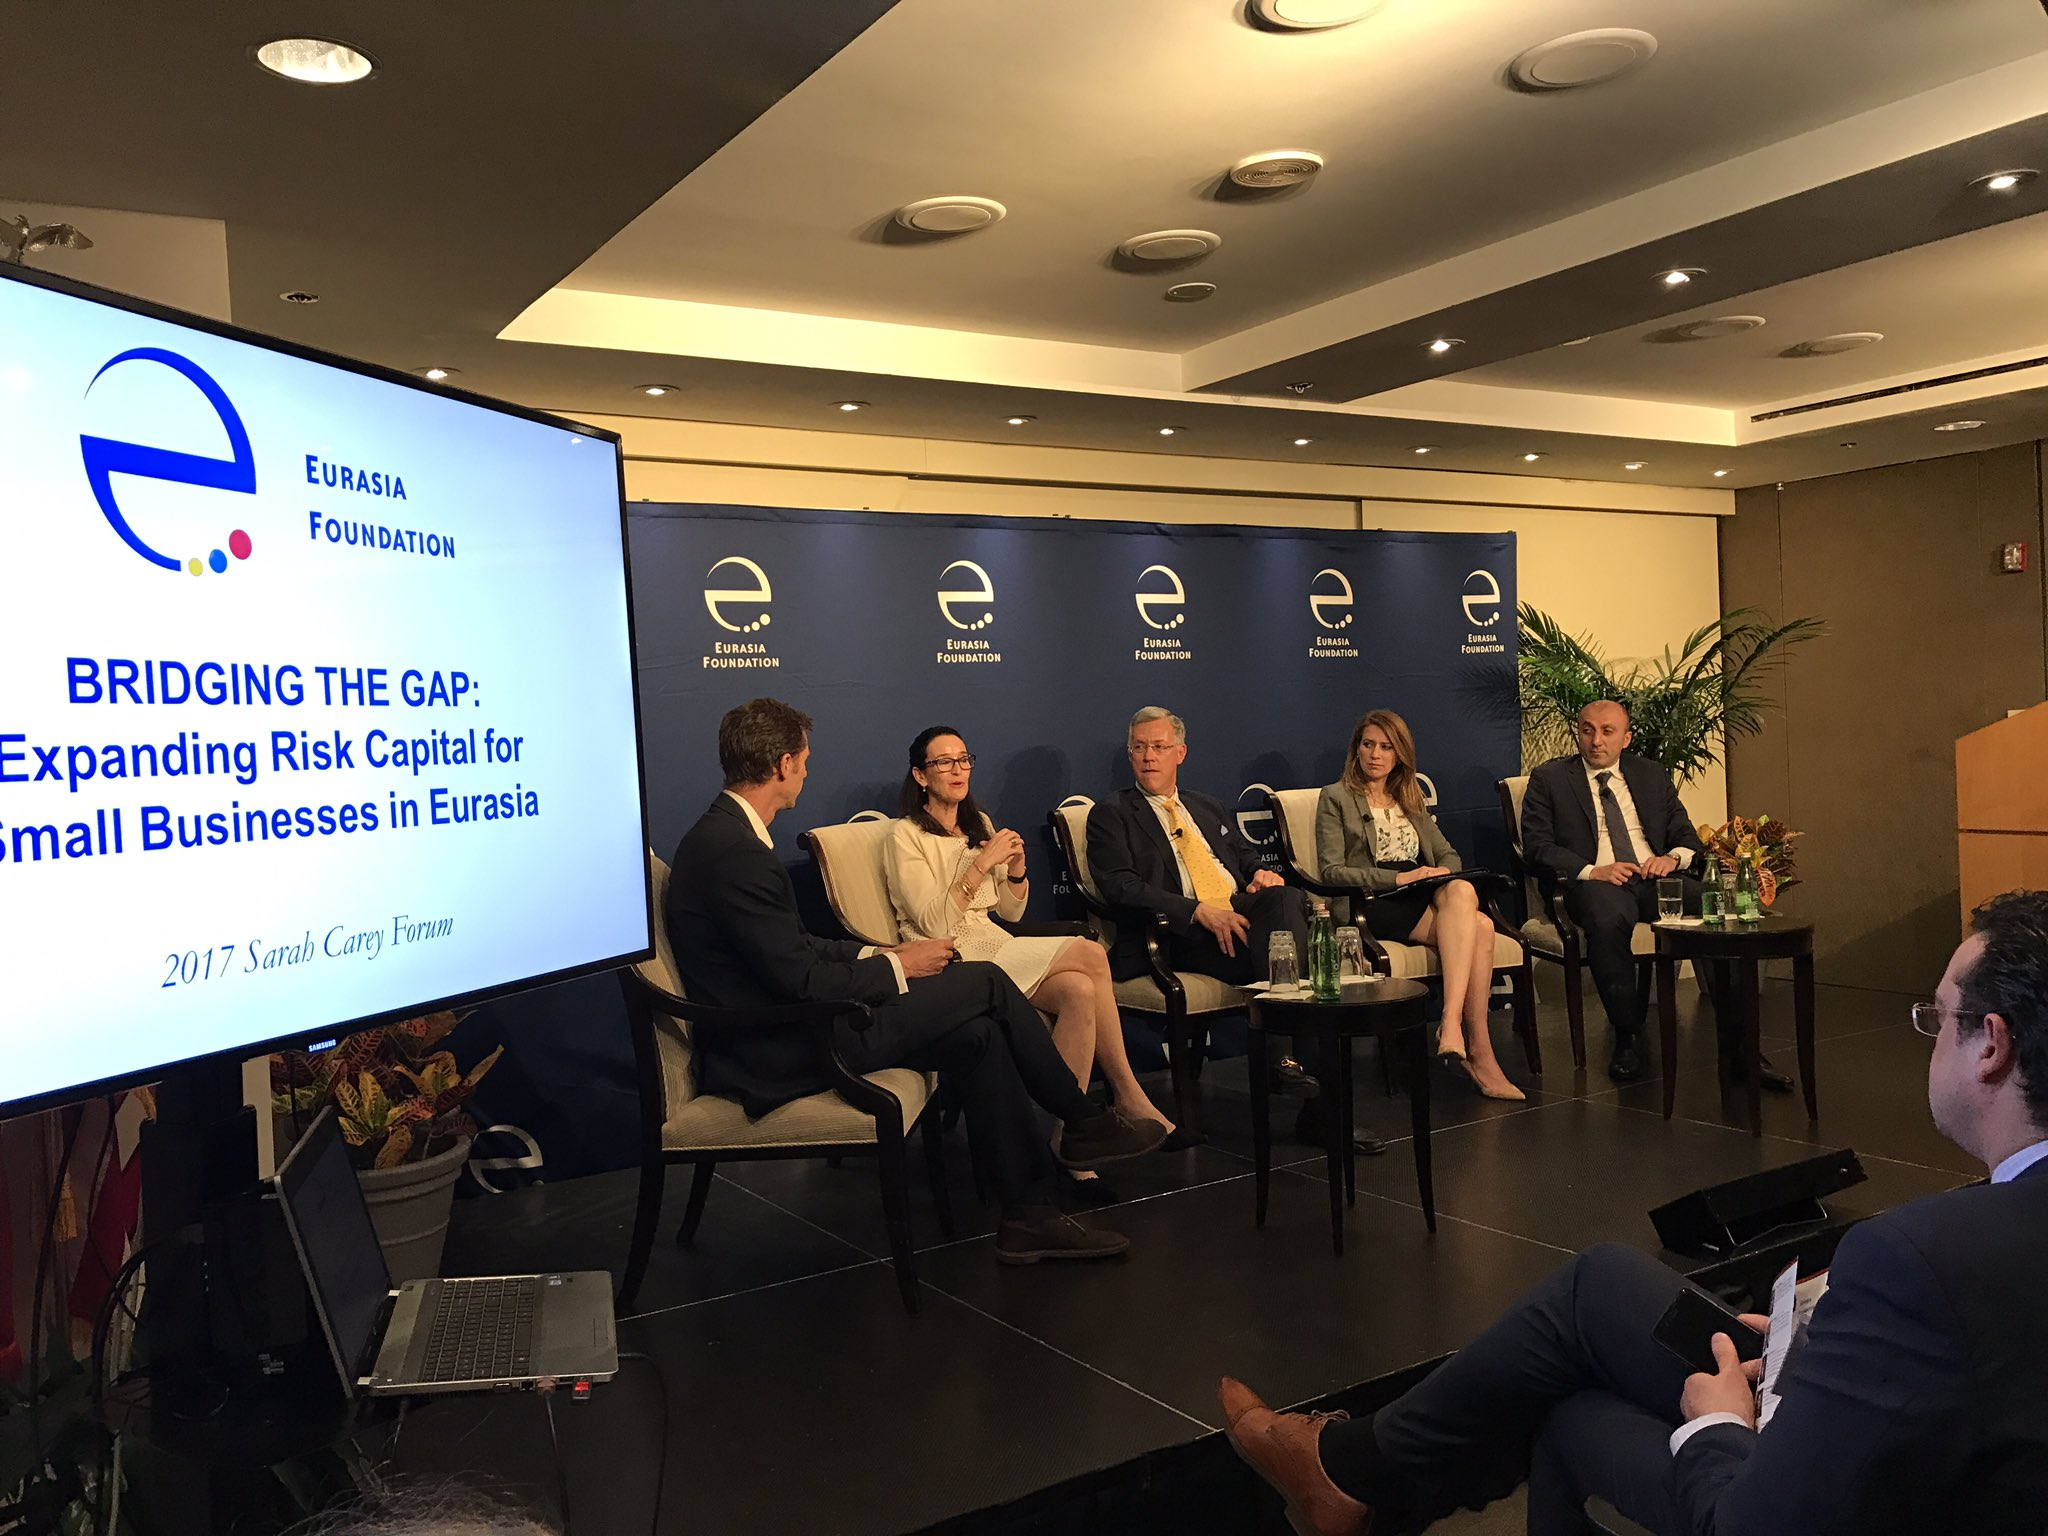 @EFNetwork Teresa Barger of Cartica Managm: Georgia really doing everything right corresponding to Ease of Doing Business Index standards https://t.co/tsyAjuu0Za